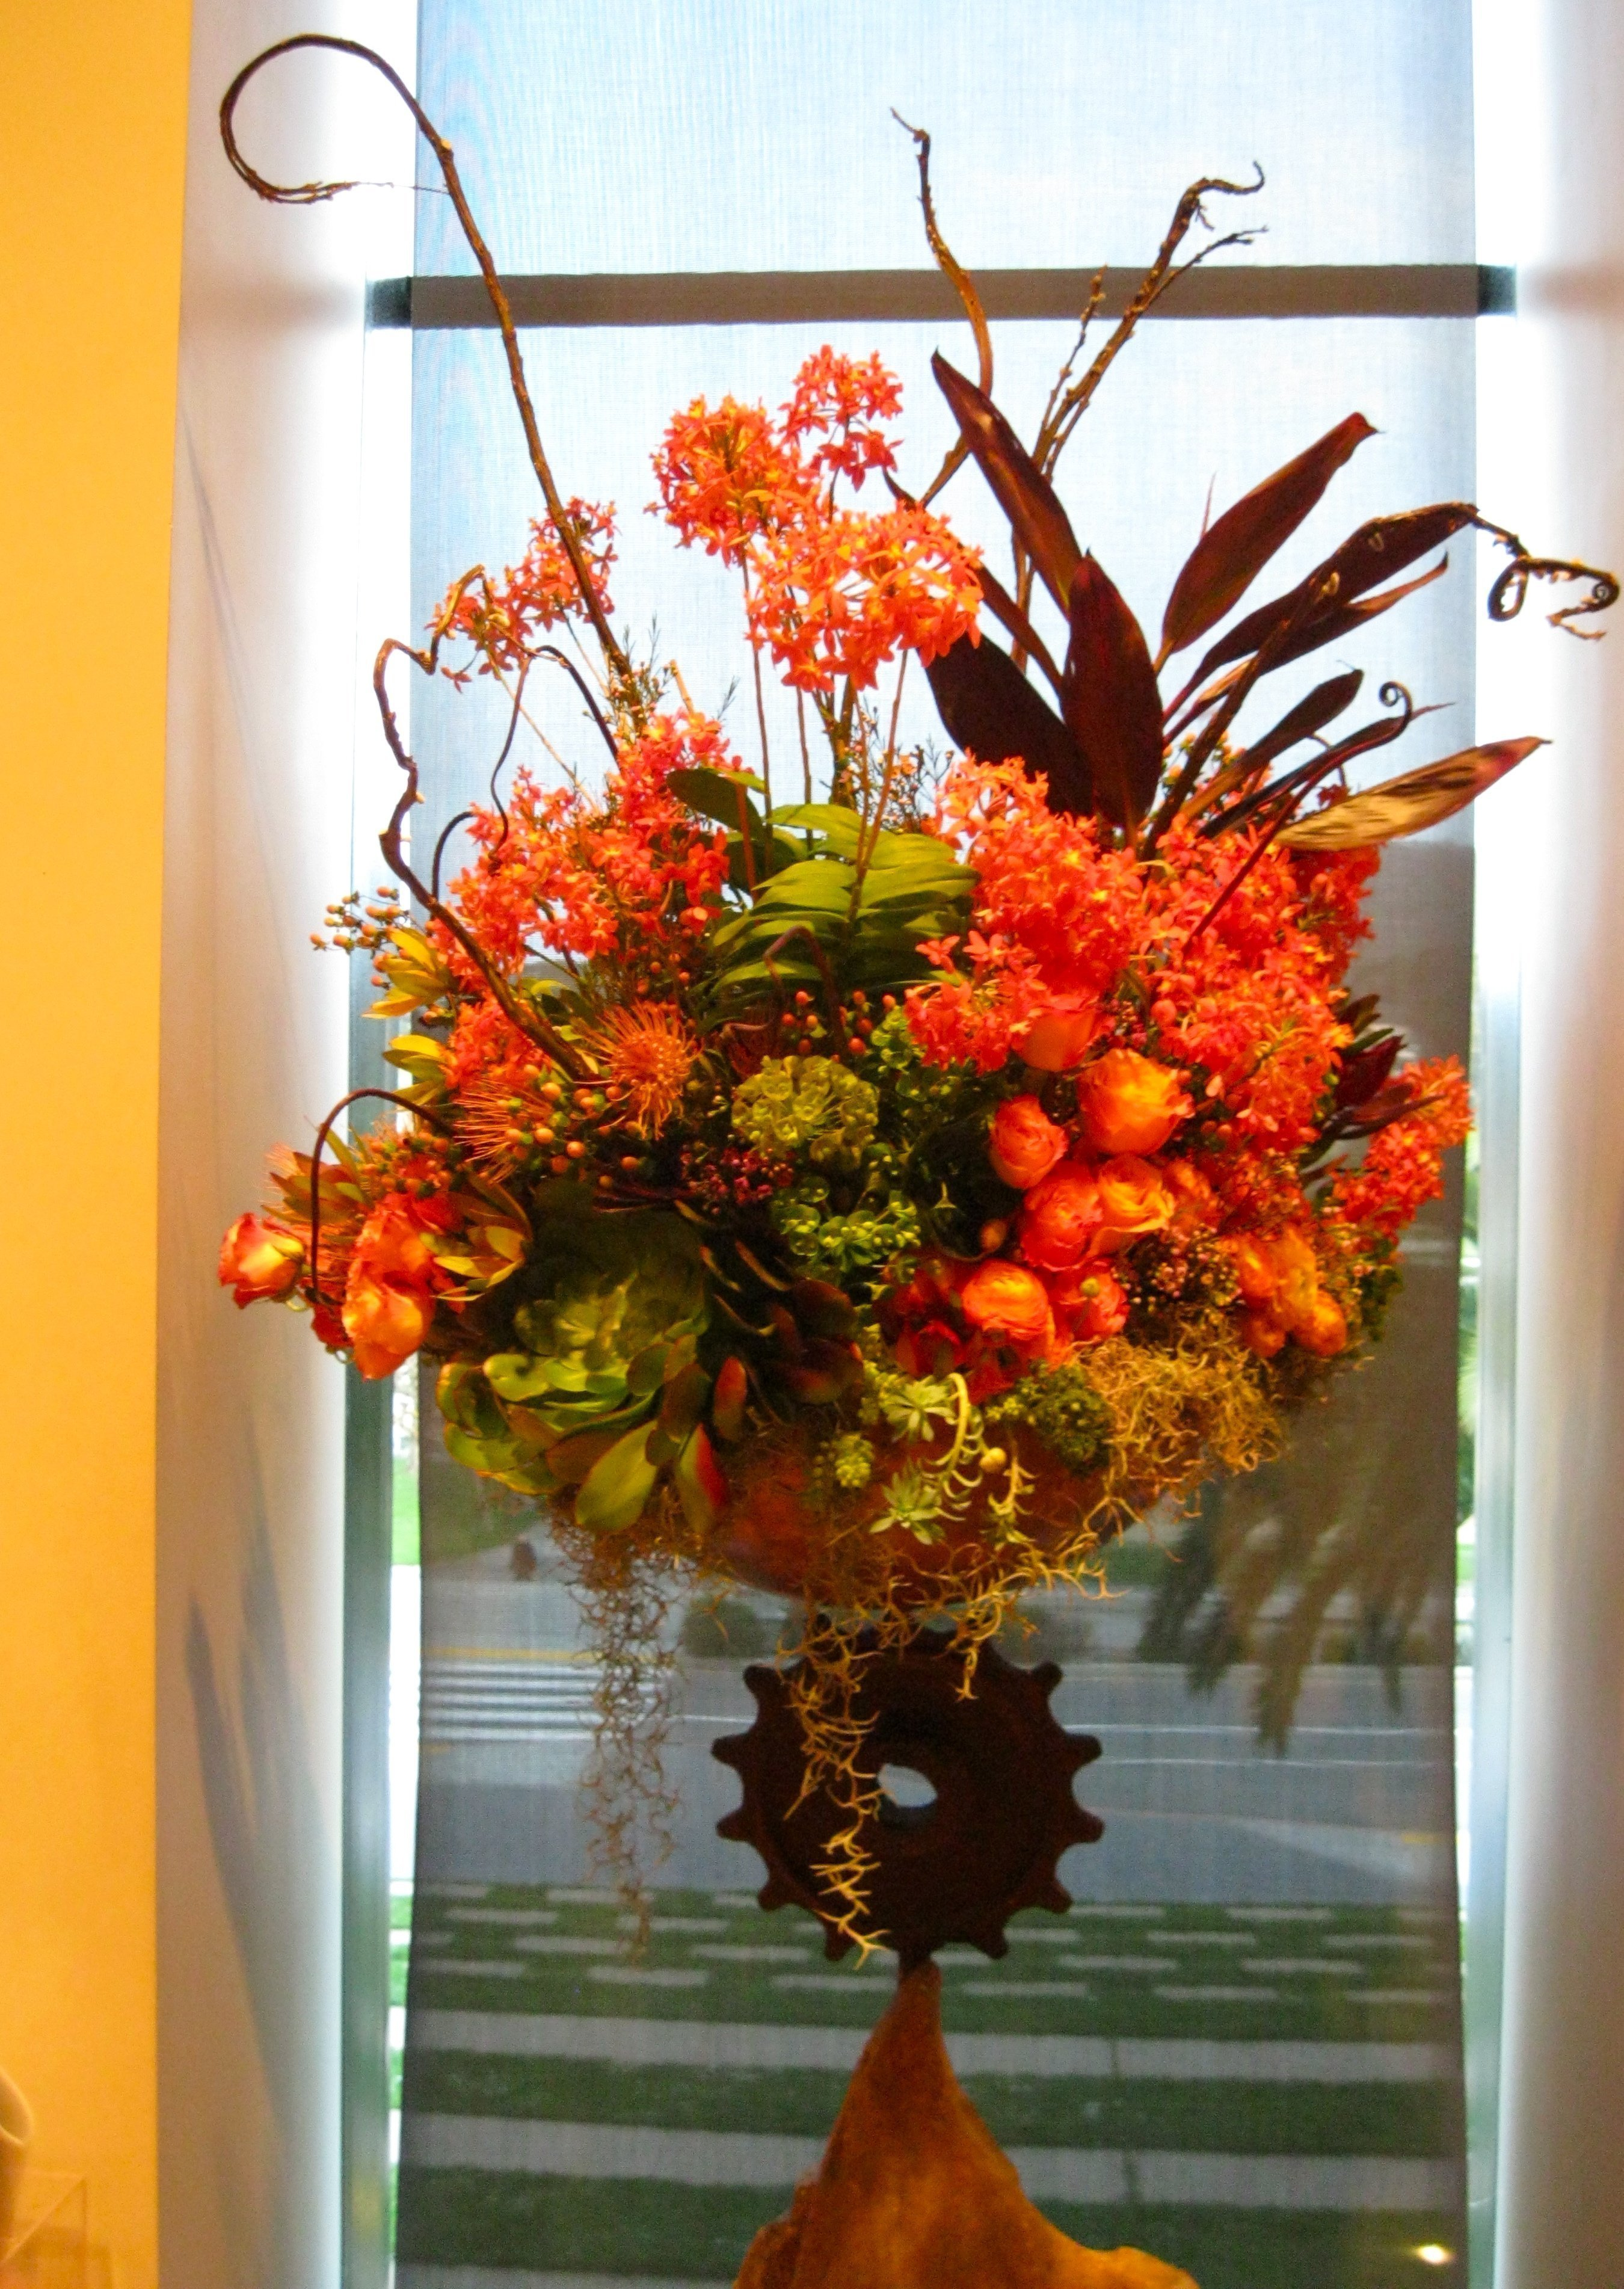 Big orange arrangement